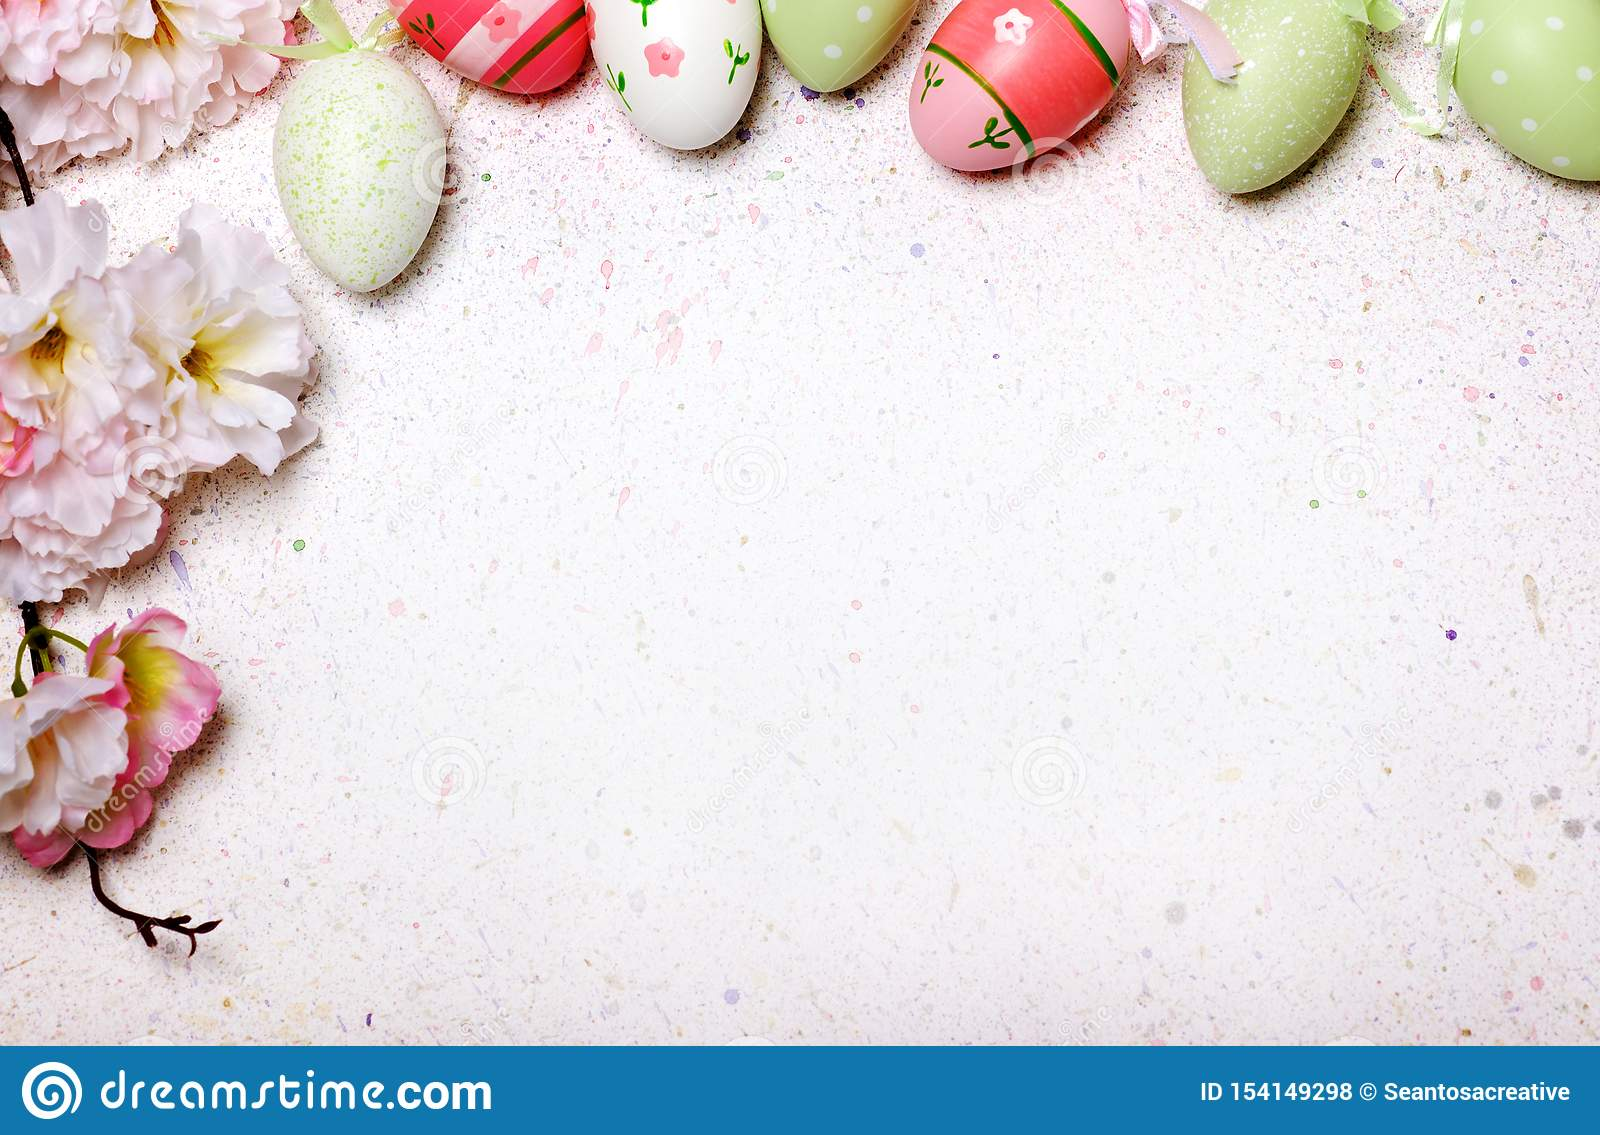 Easter egg cute and flowers background